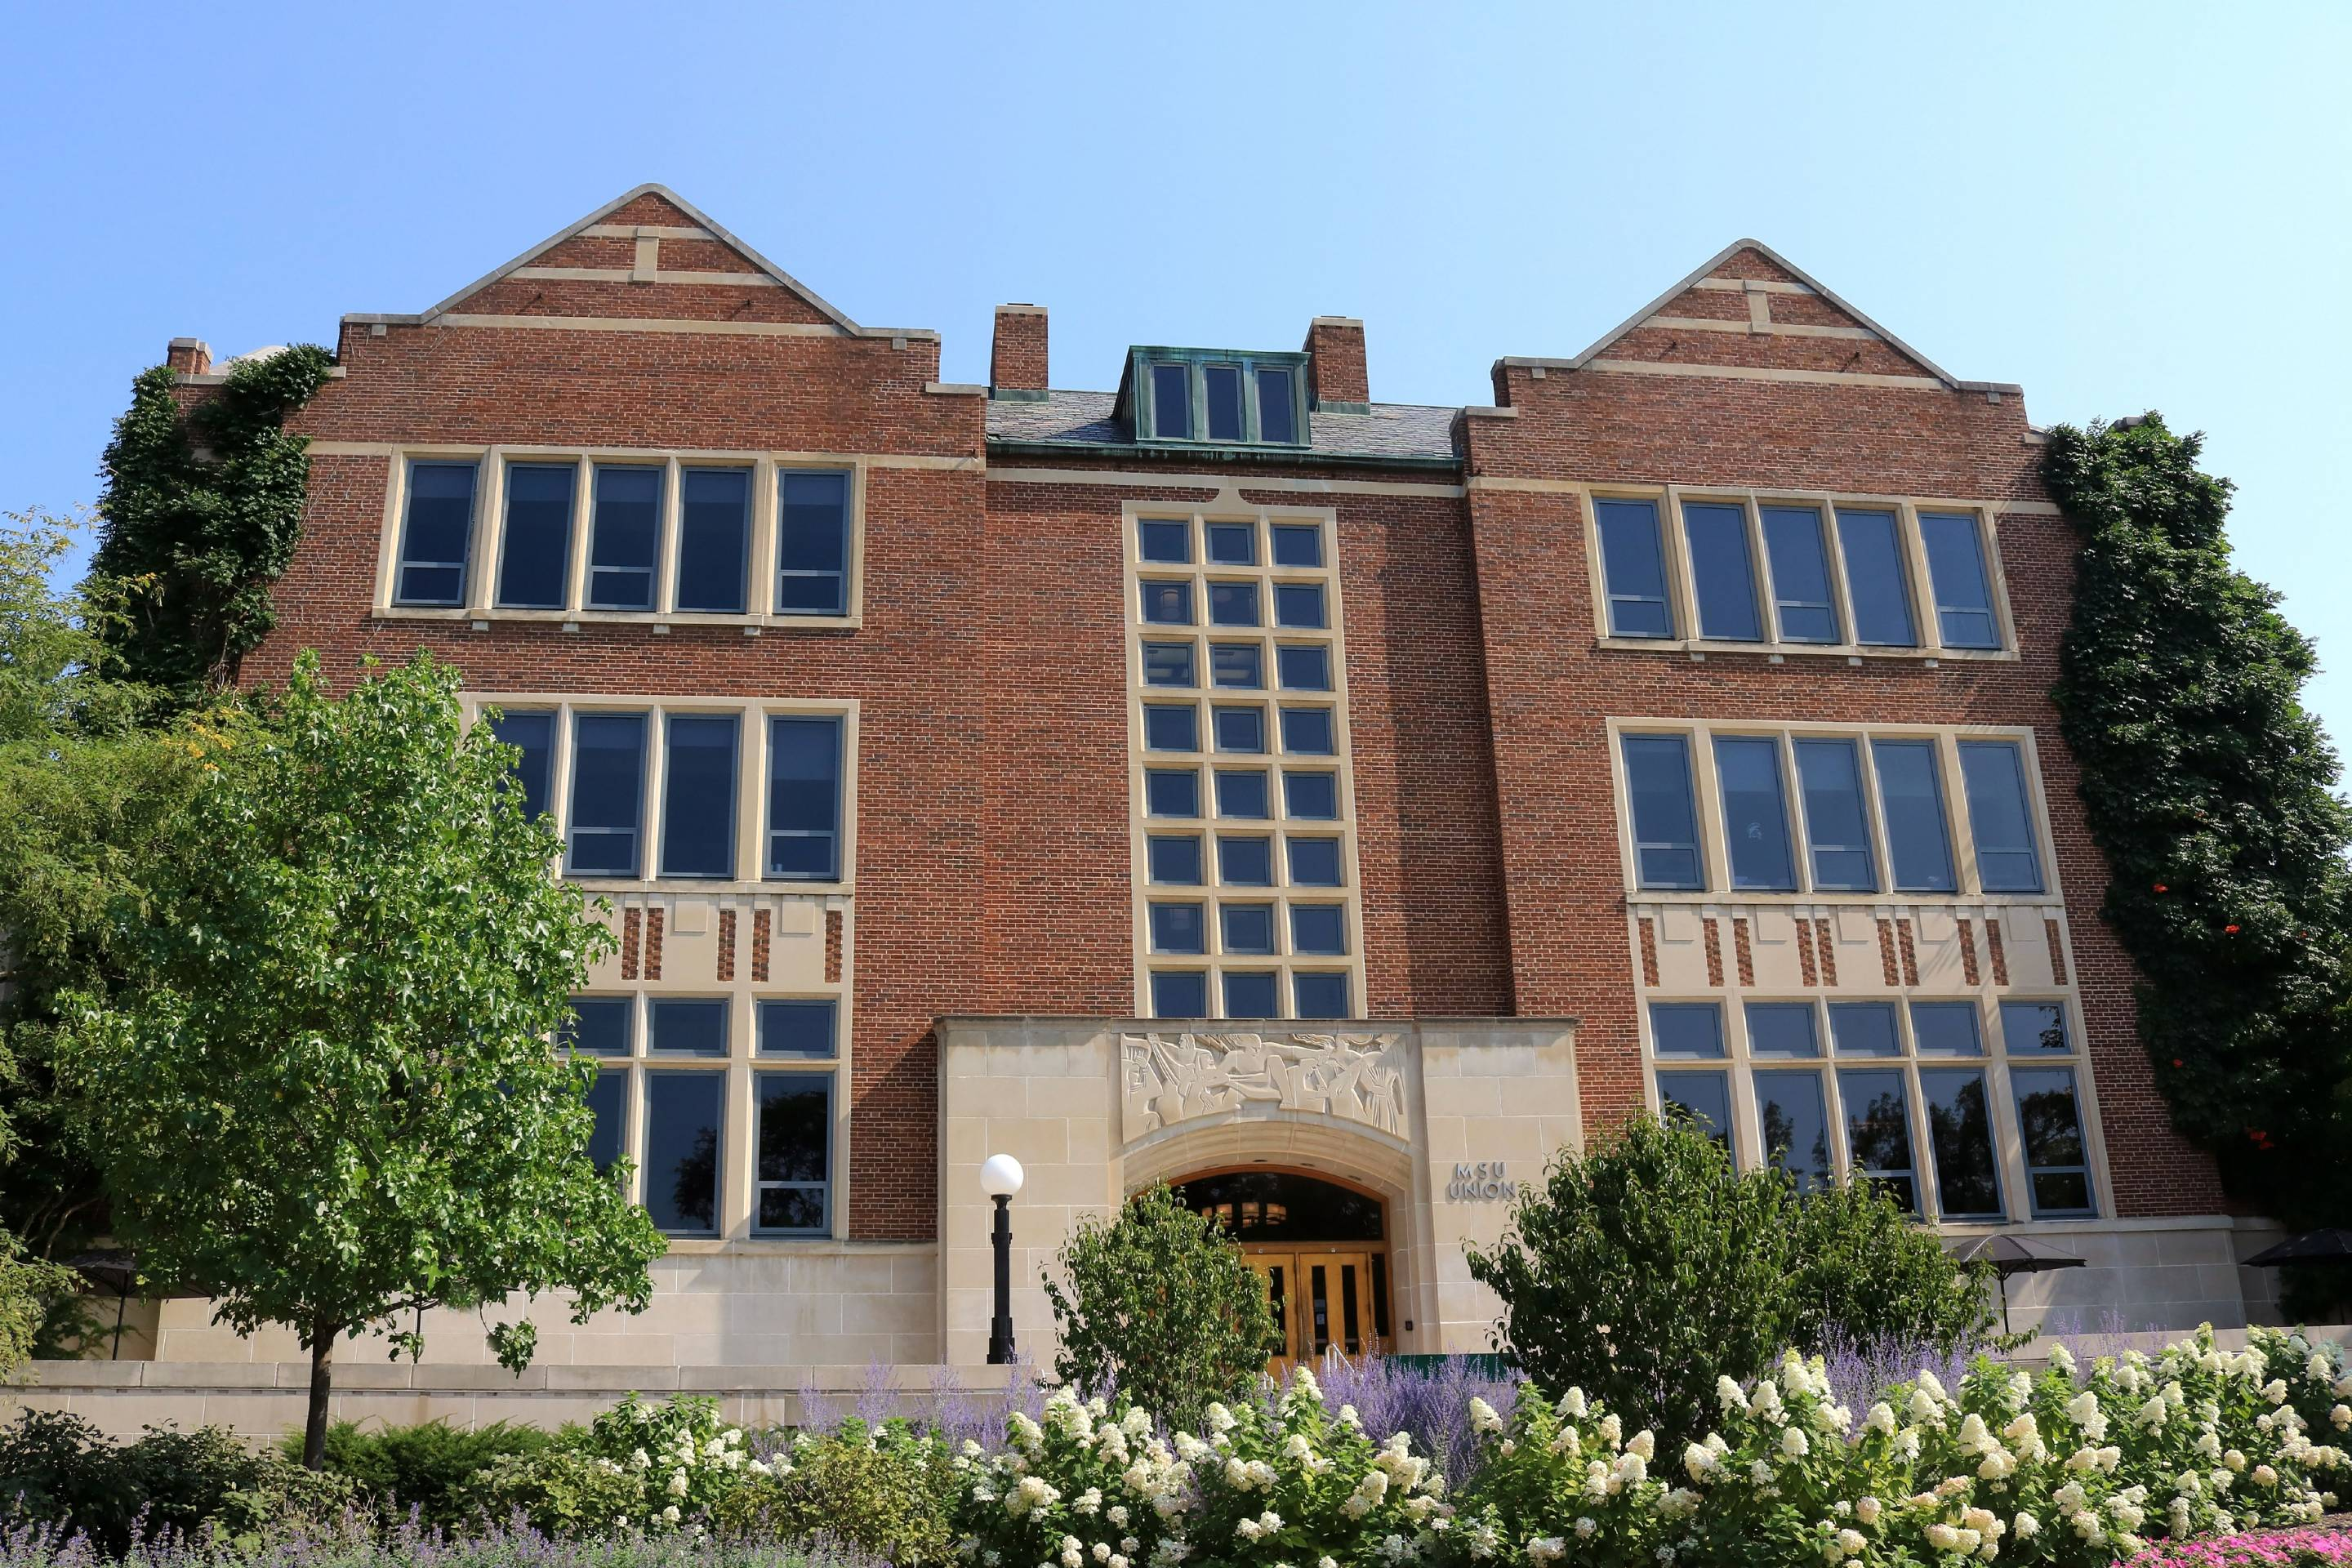 Michigan State University student union building